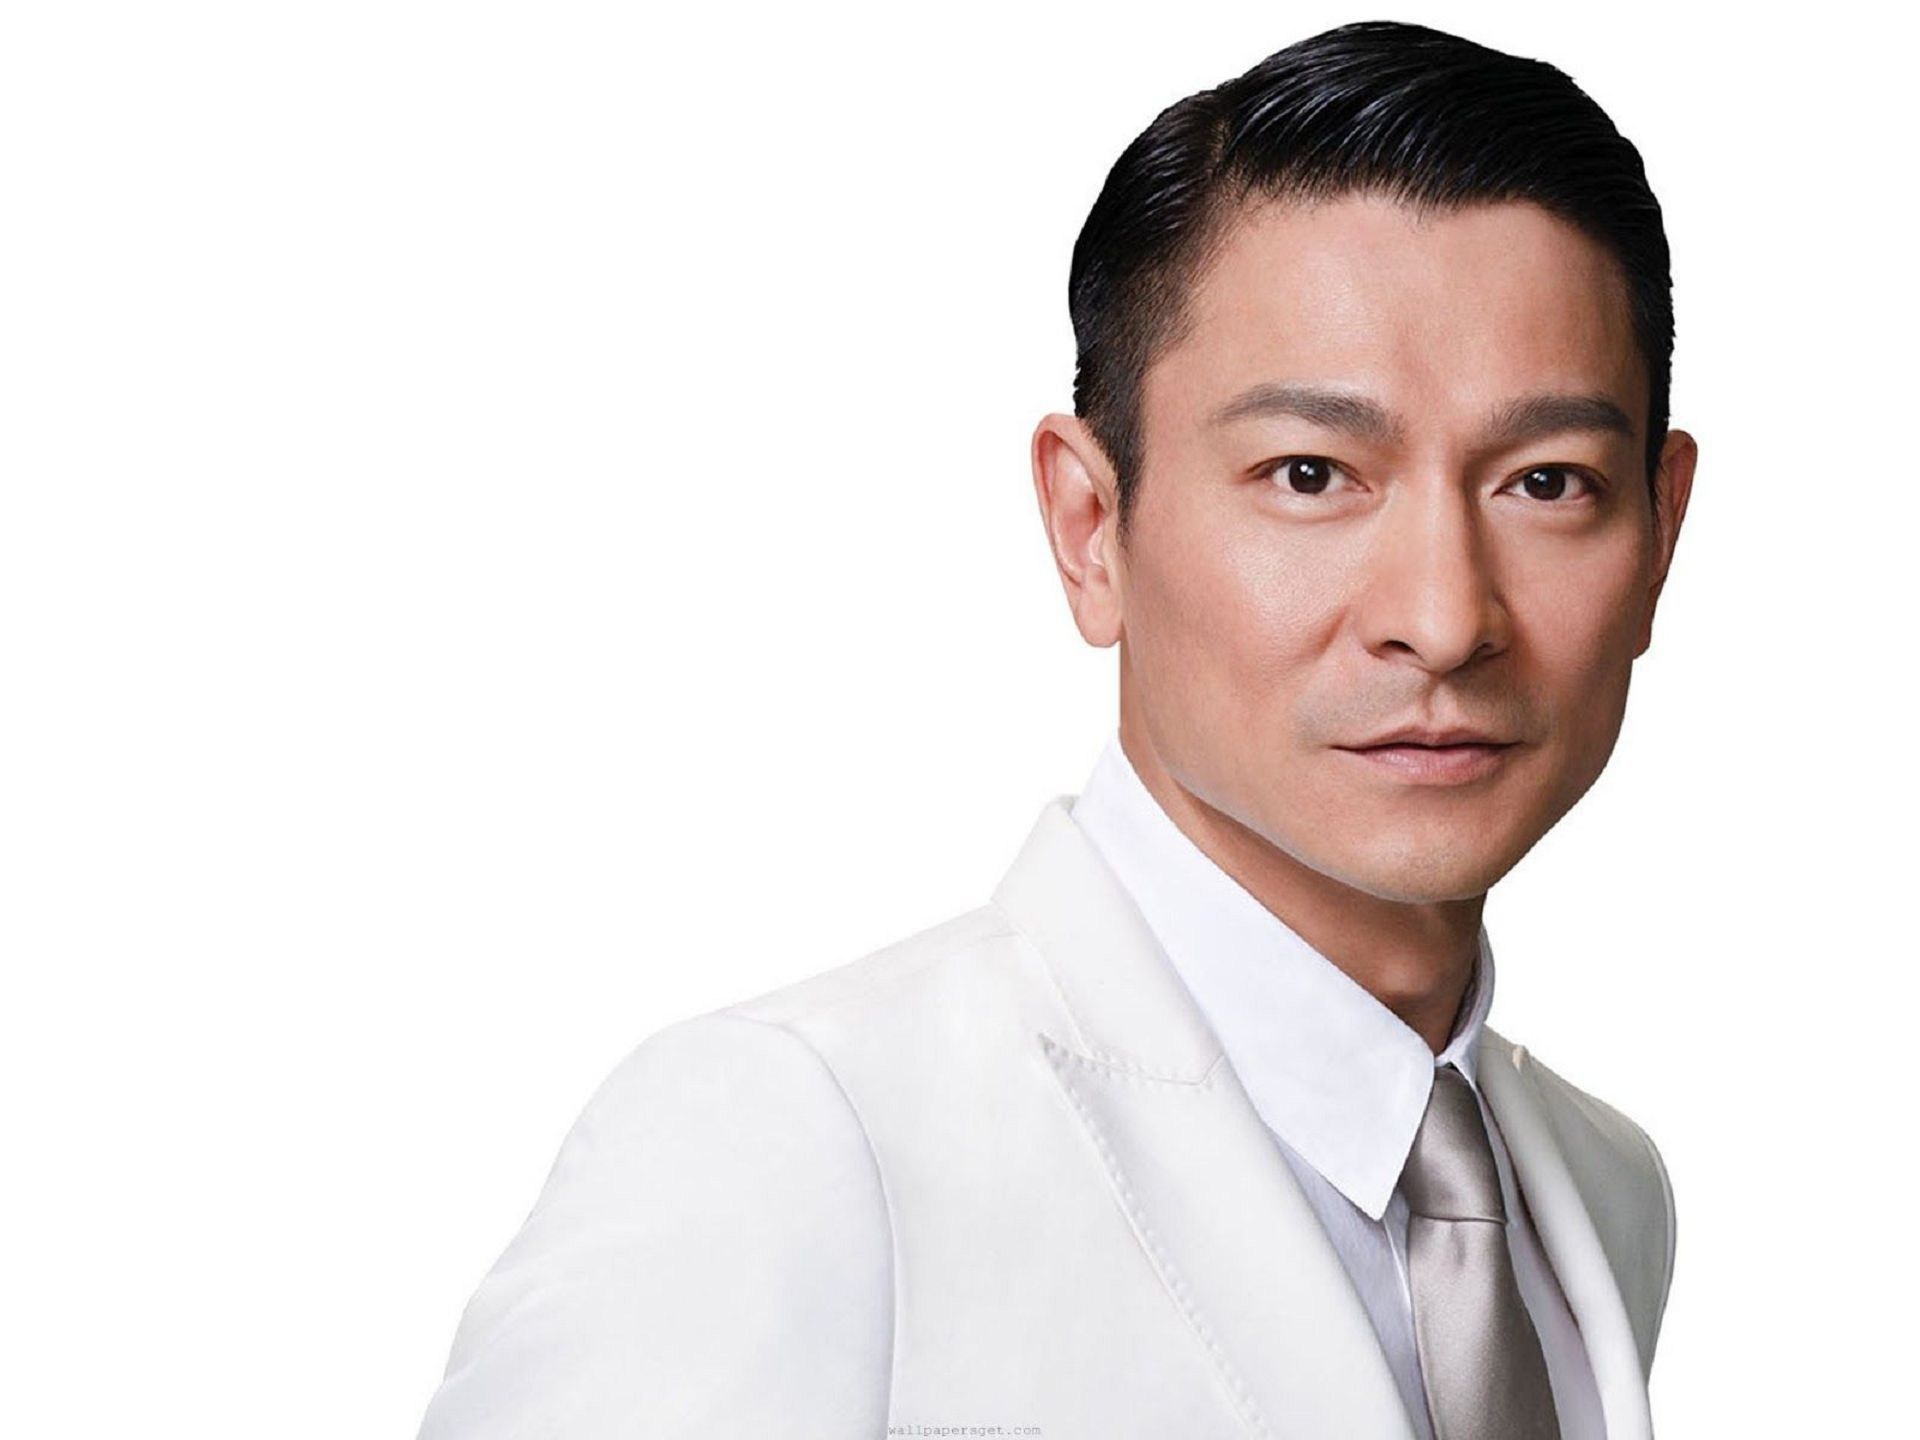 Picture Andy Lau